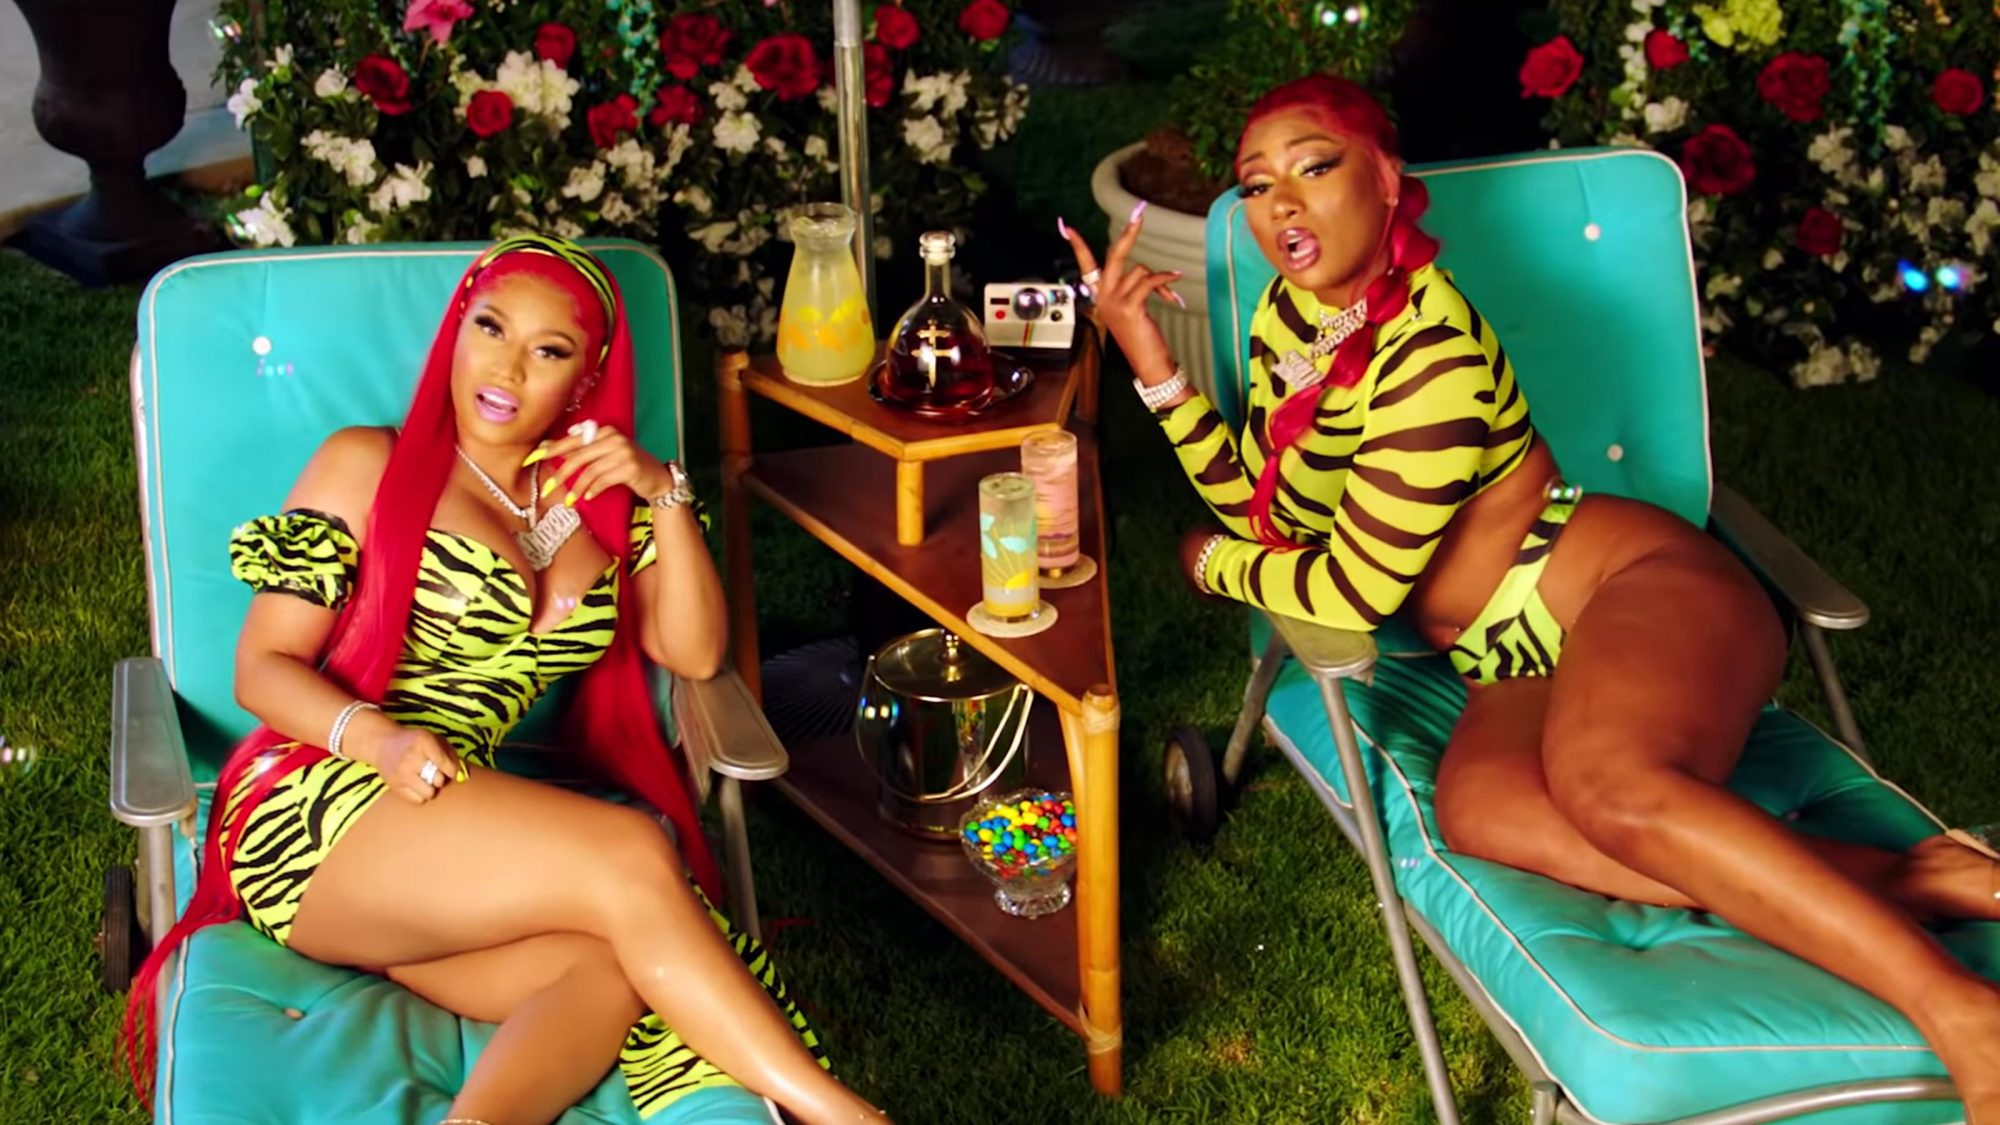 Megan Thee Stallion - Hot Girl Summer ft. Nicki Minaj & Ty Dolla $ign [Official Video] (screen grab) https://www.youtube.com/watch?v=FbcLcSY2au4 CR: Megan Thee Stallion/YouTube